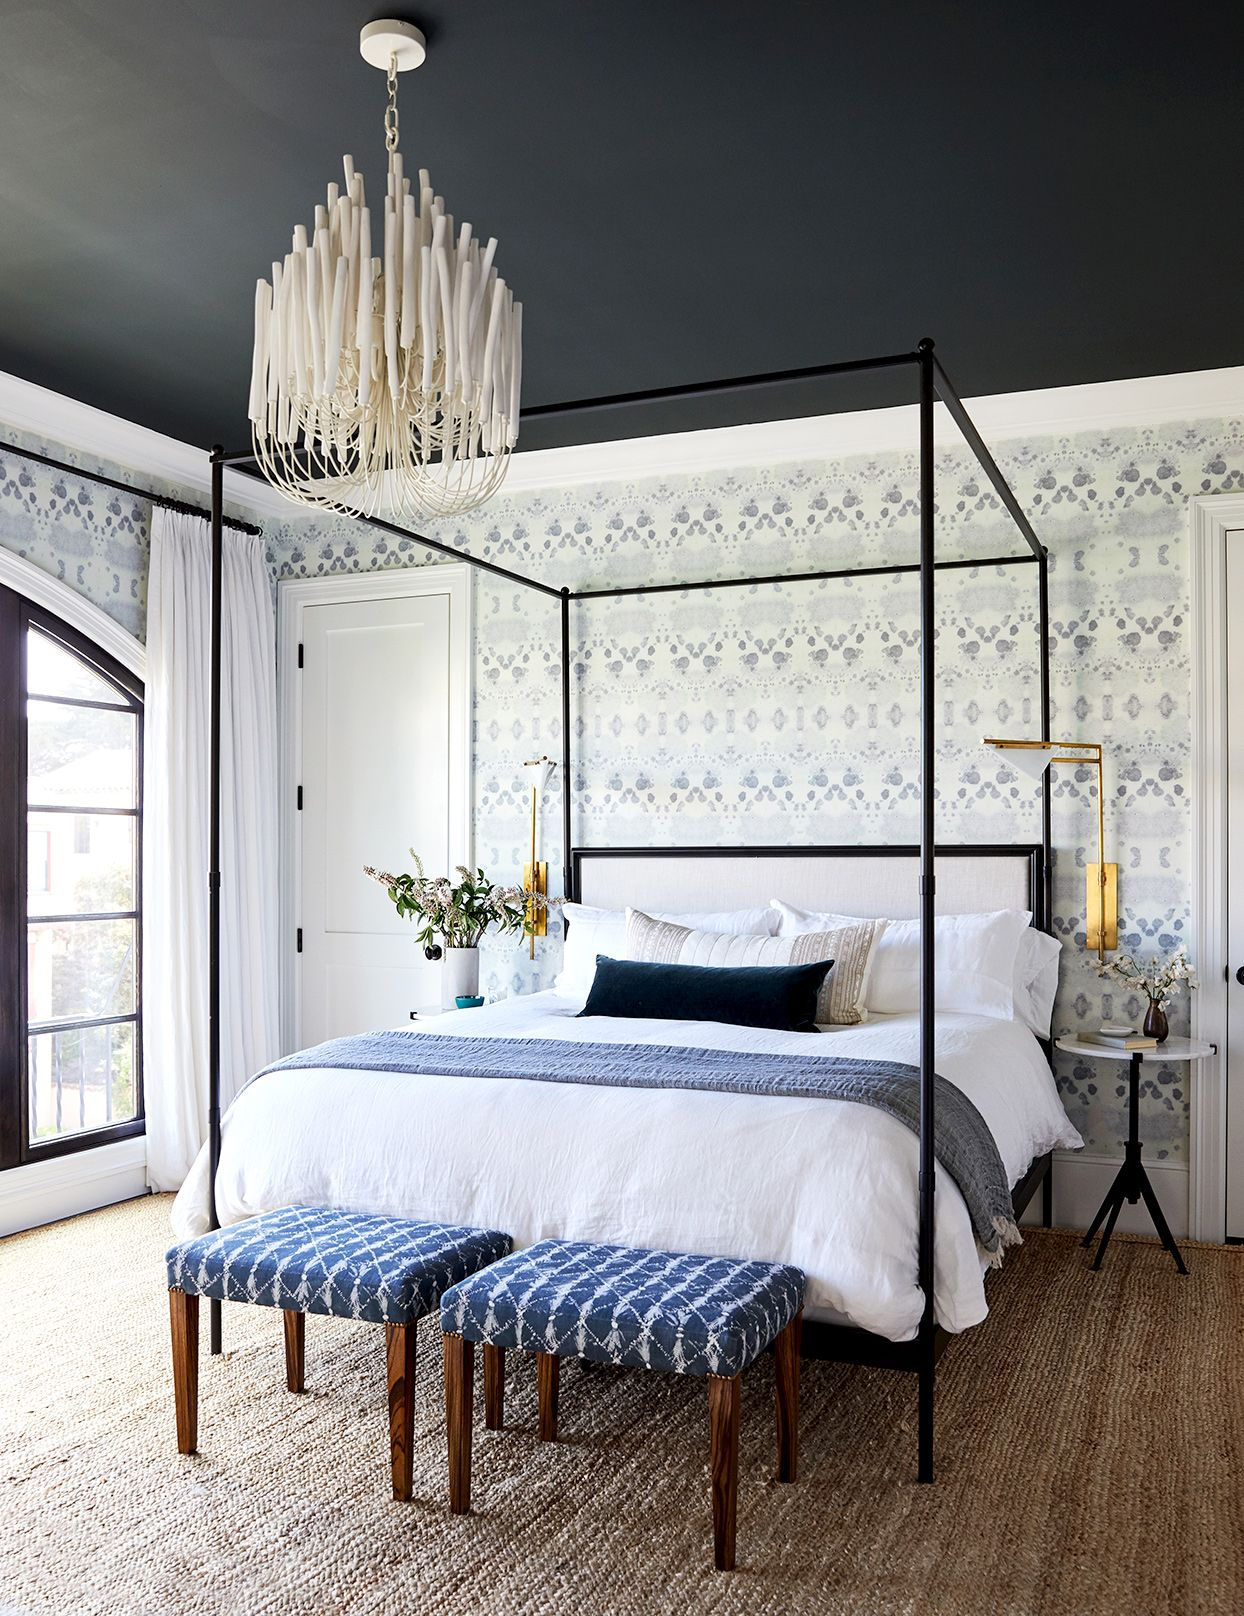 This San Francisco Home S Design Pays Homage To Its Lovely Architectural Bones Home Decor Bedroom Guest Room Decor Home Decor